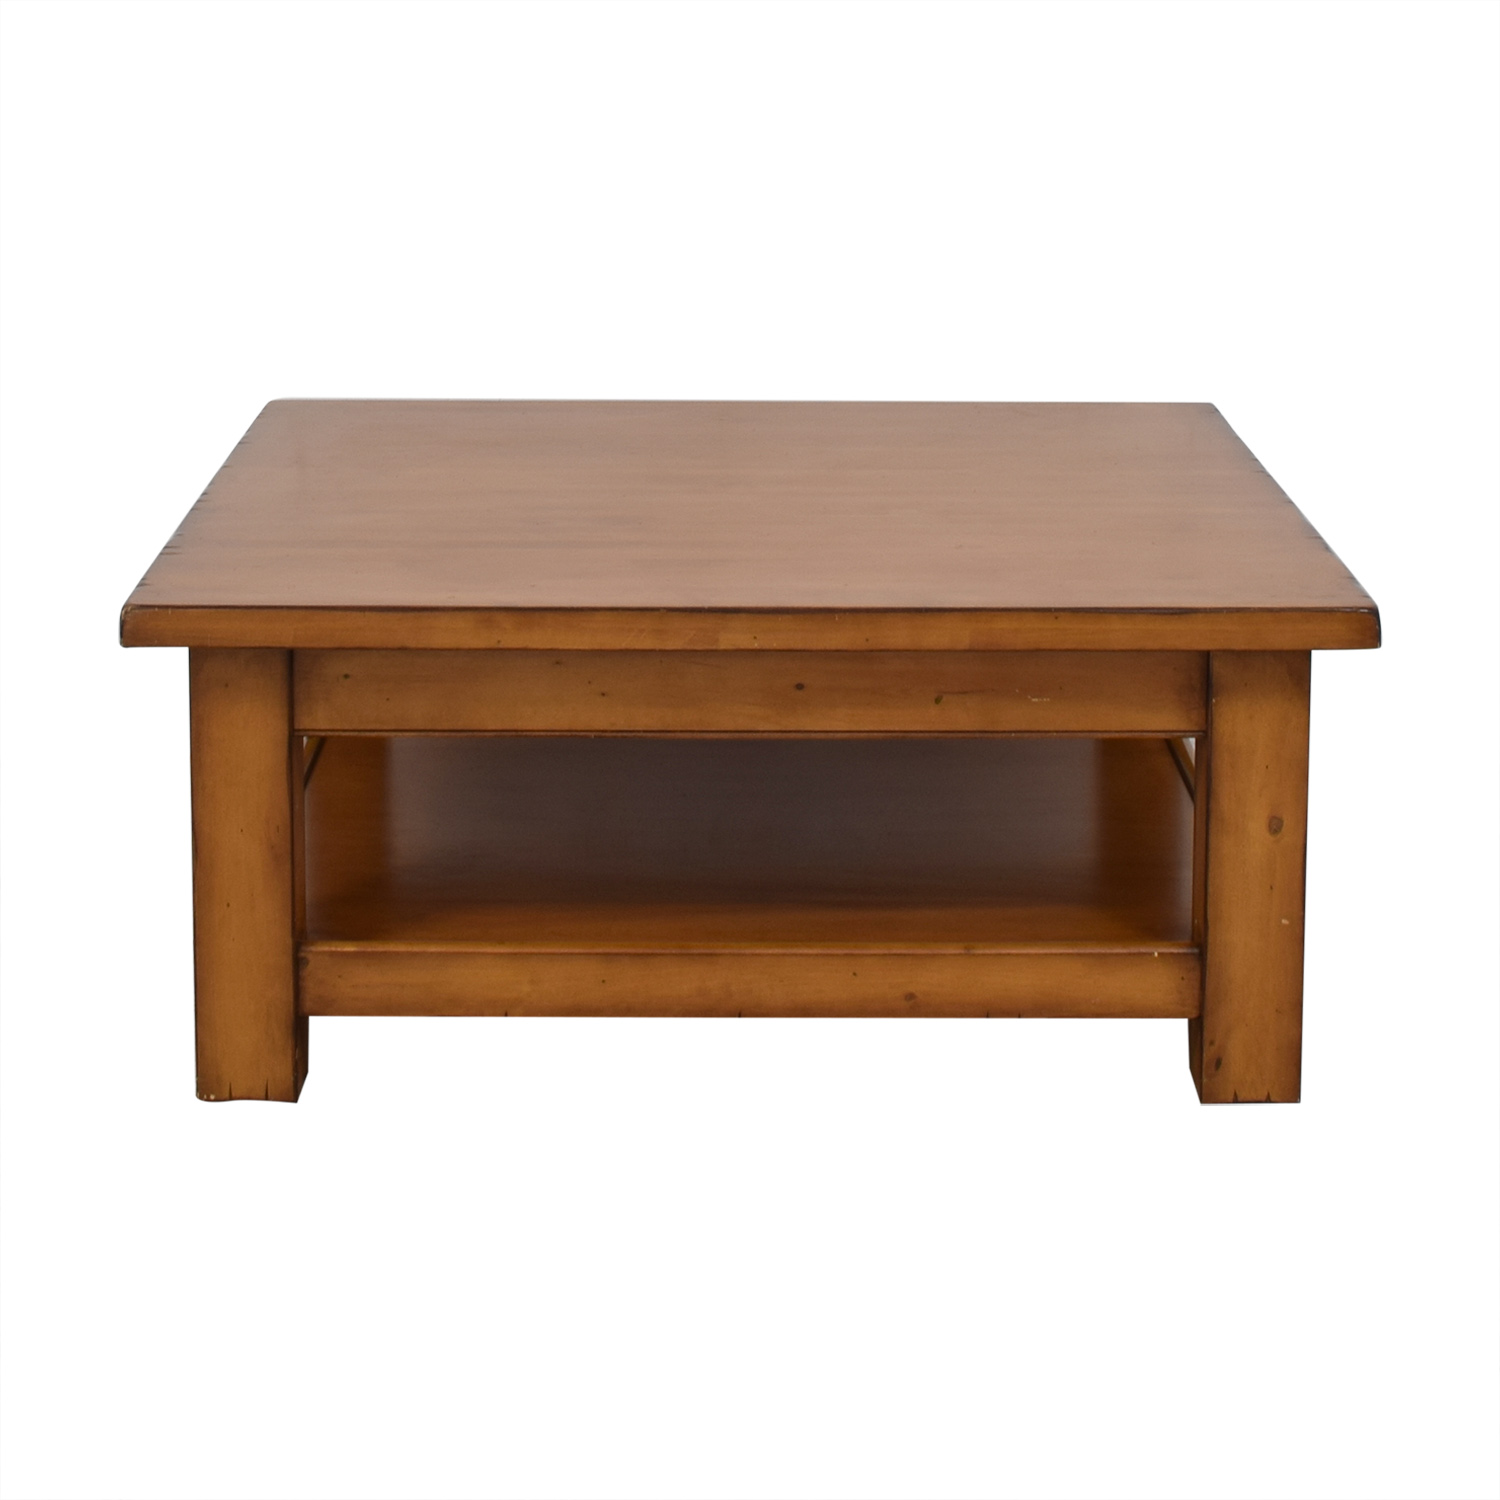 70% OFF   Pottery Barn Pottery Barn Morgan Coffee Table / Tables